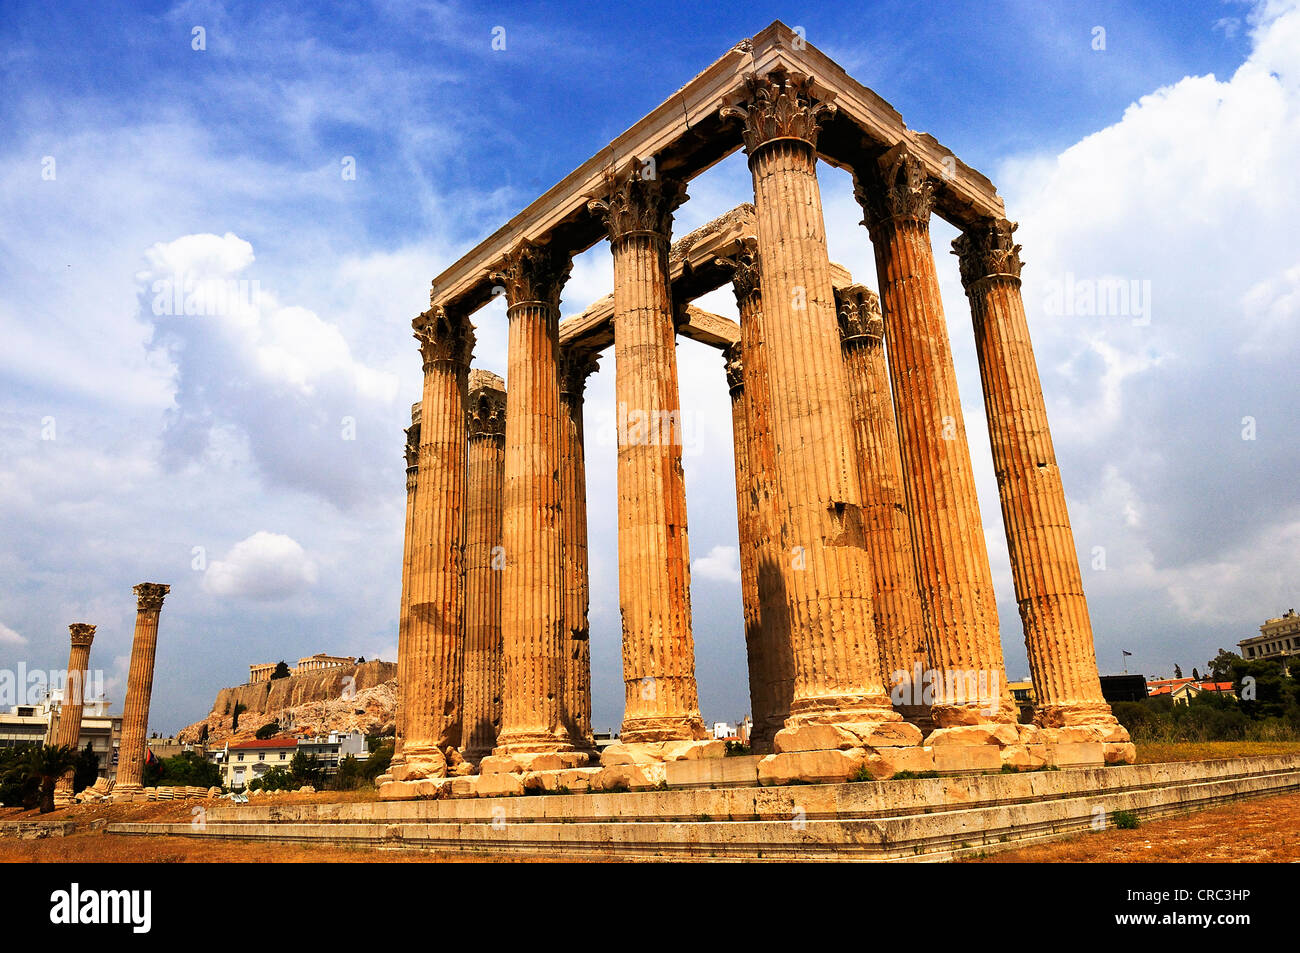 Temple of the Olympian Zeus and the Acropolis in Athens, Greece - Stock Image